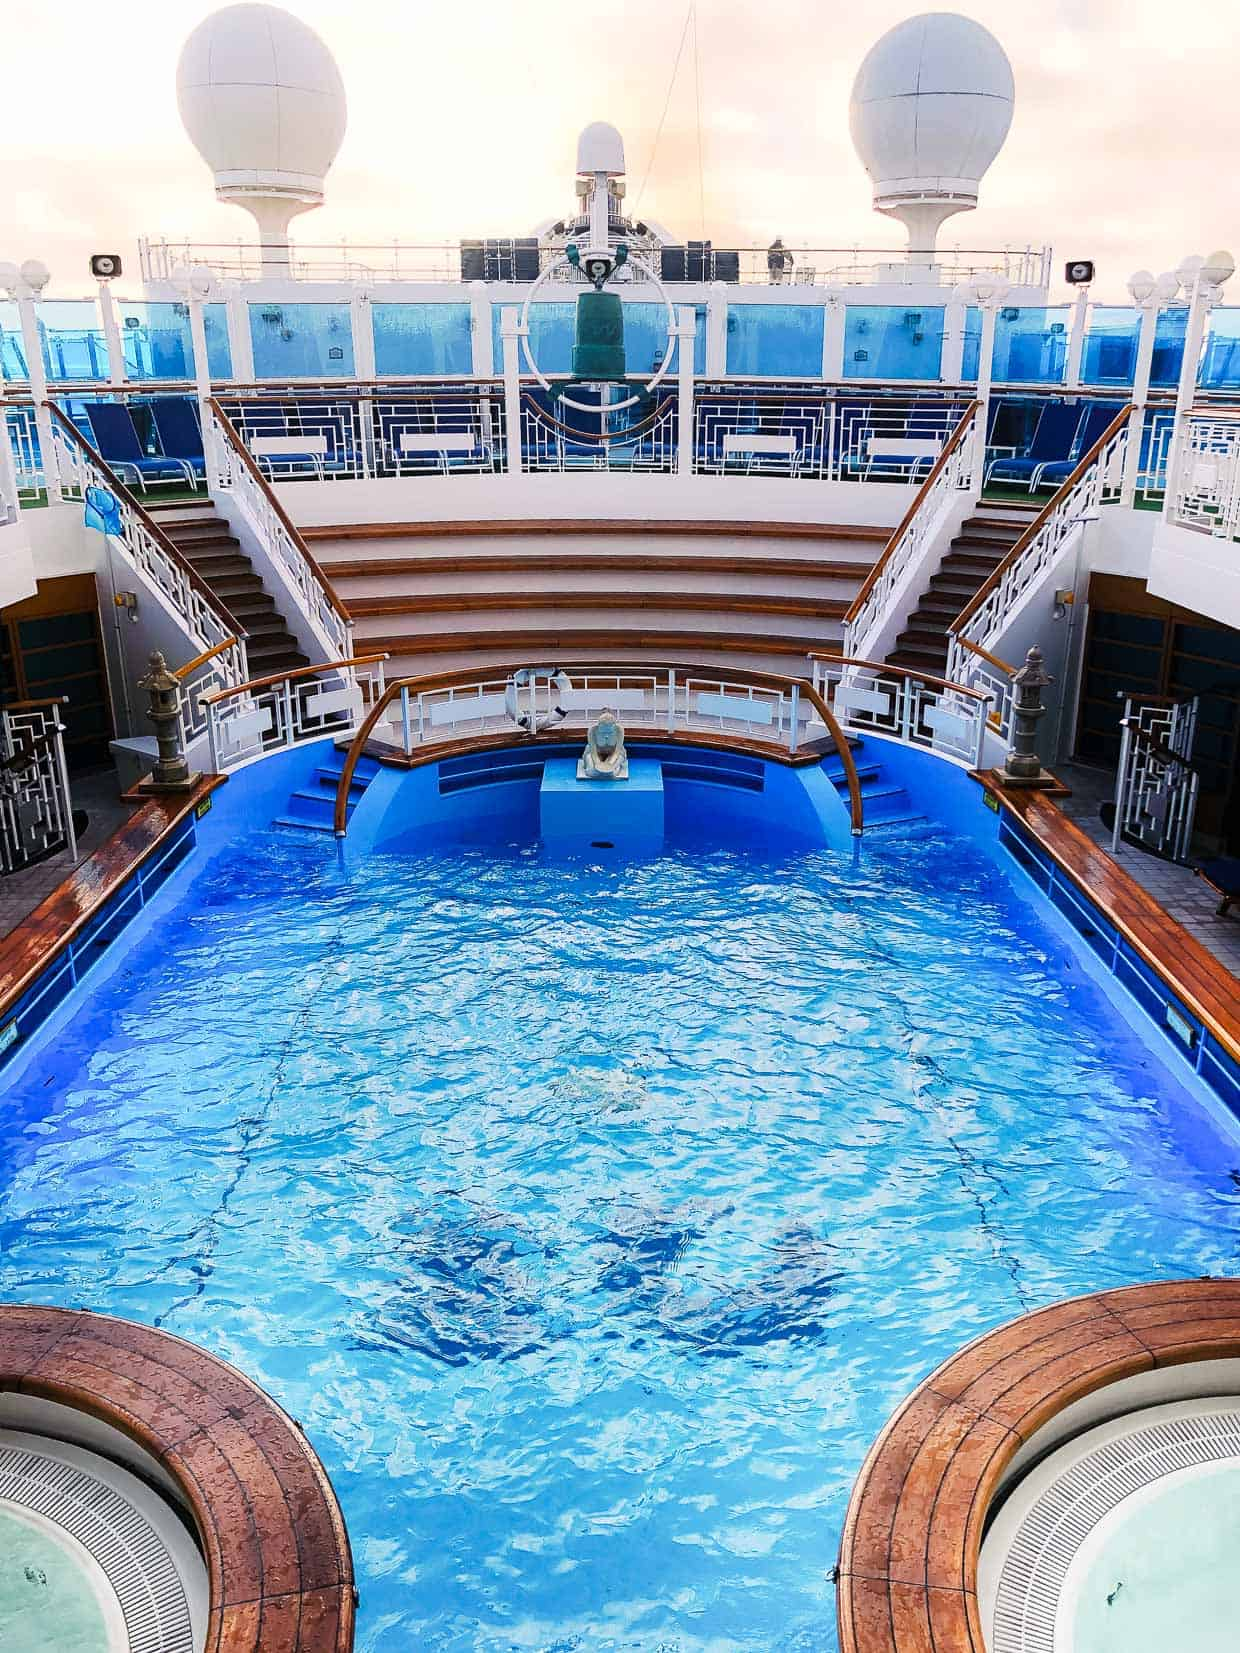 #ad Spa Pool on the Ruby Princess. Find out why we loved cruising the Mexican Riviera with Princess Cruises!